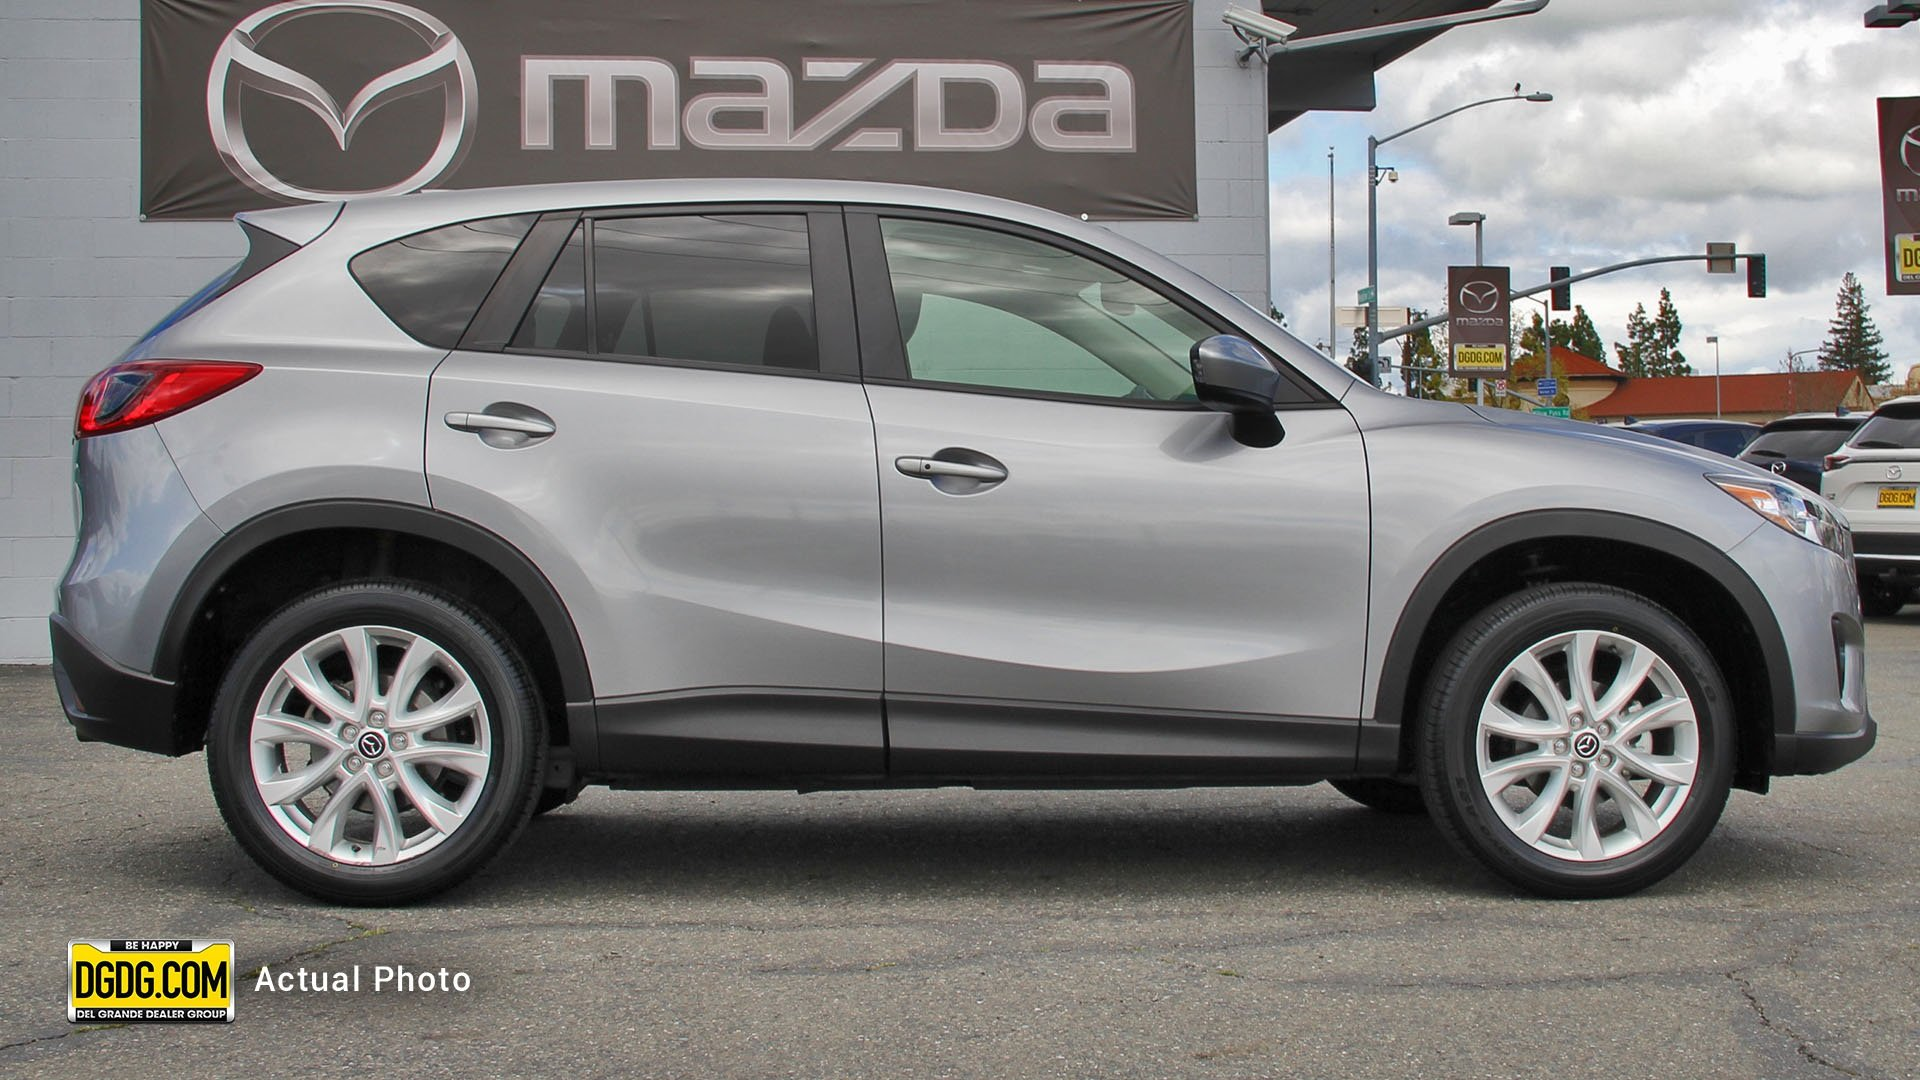 Certified Pre-Owned 2014 Mazda CX-5 Grand Touring